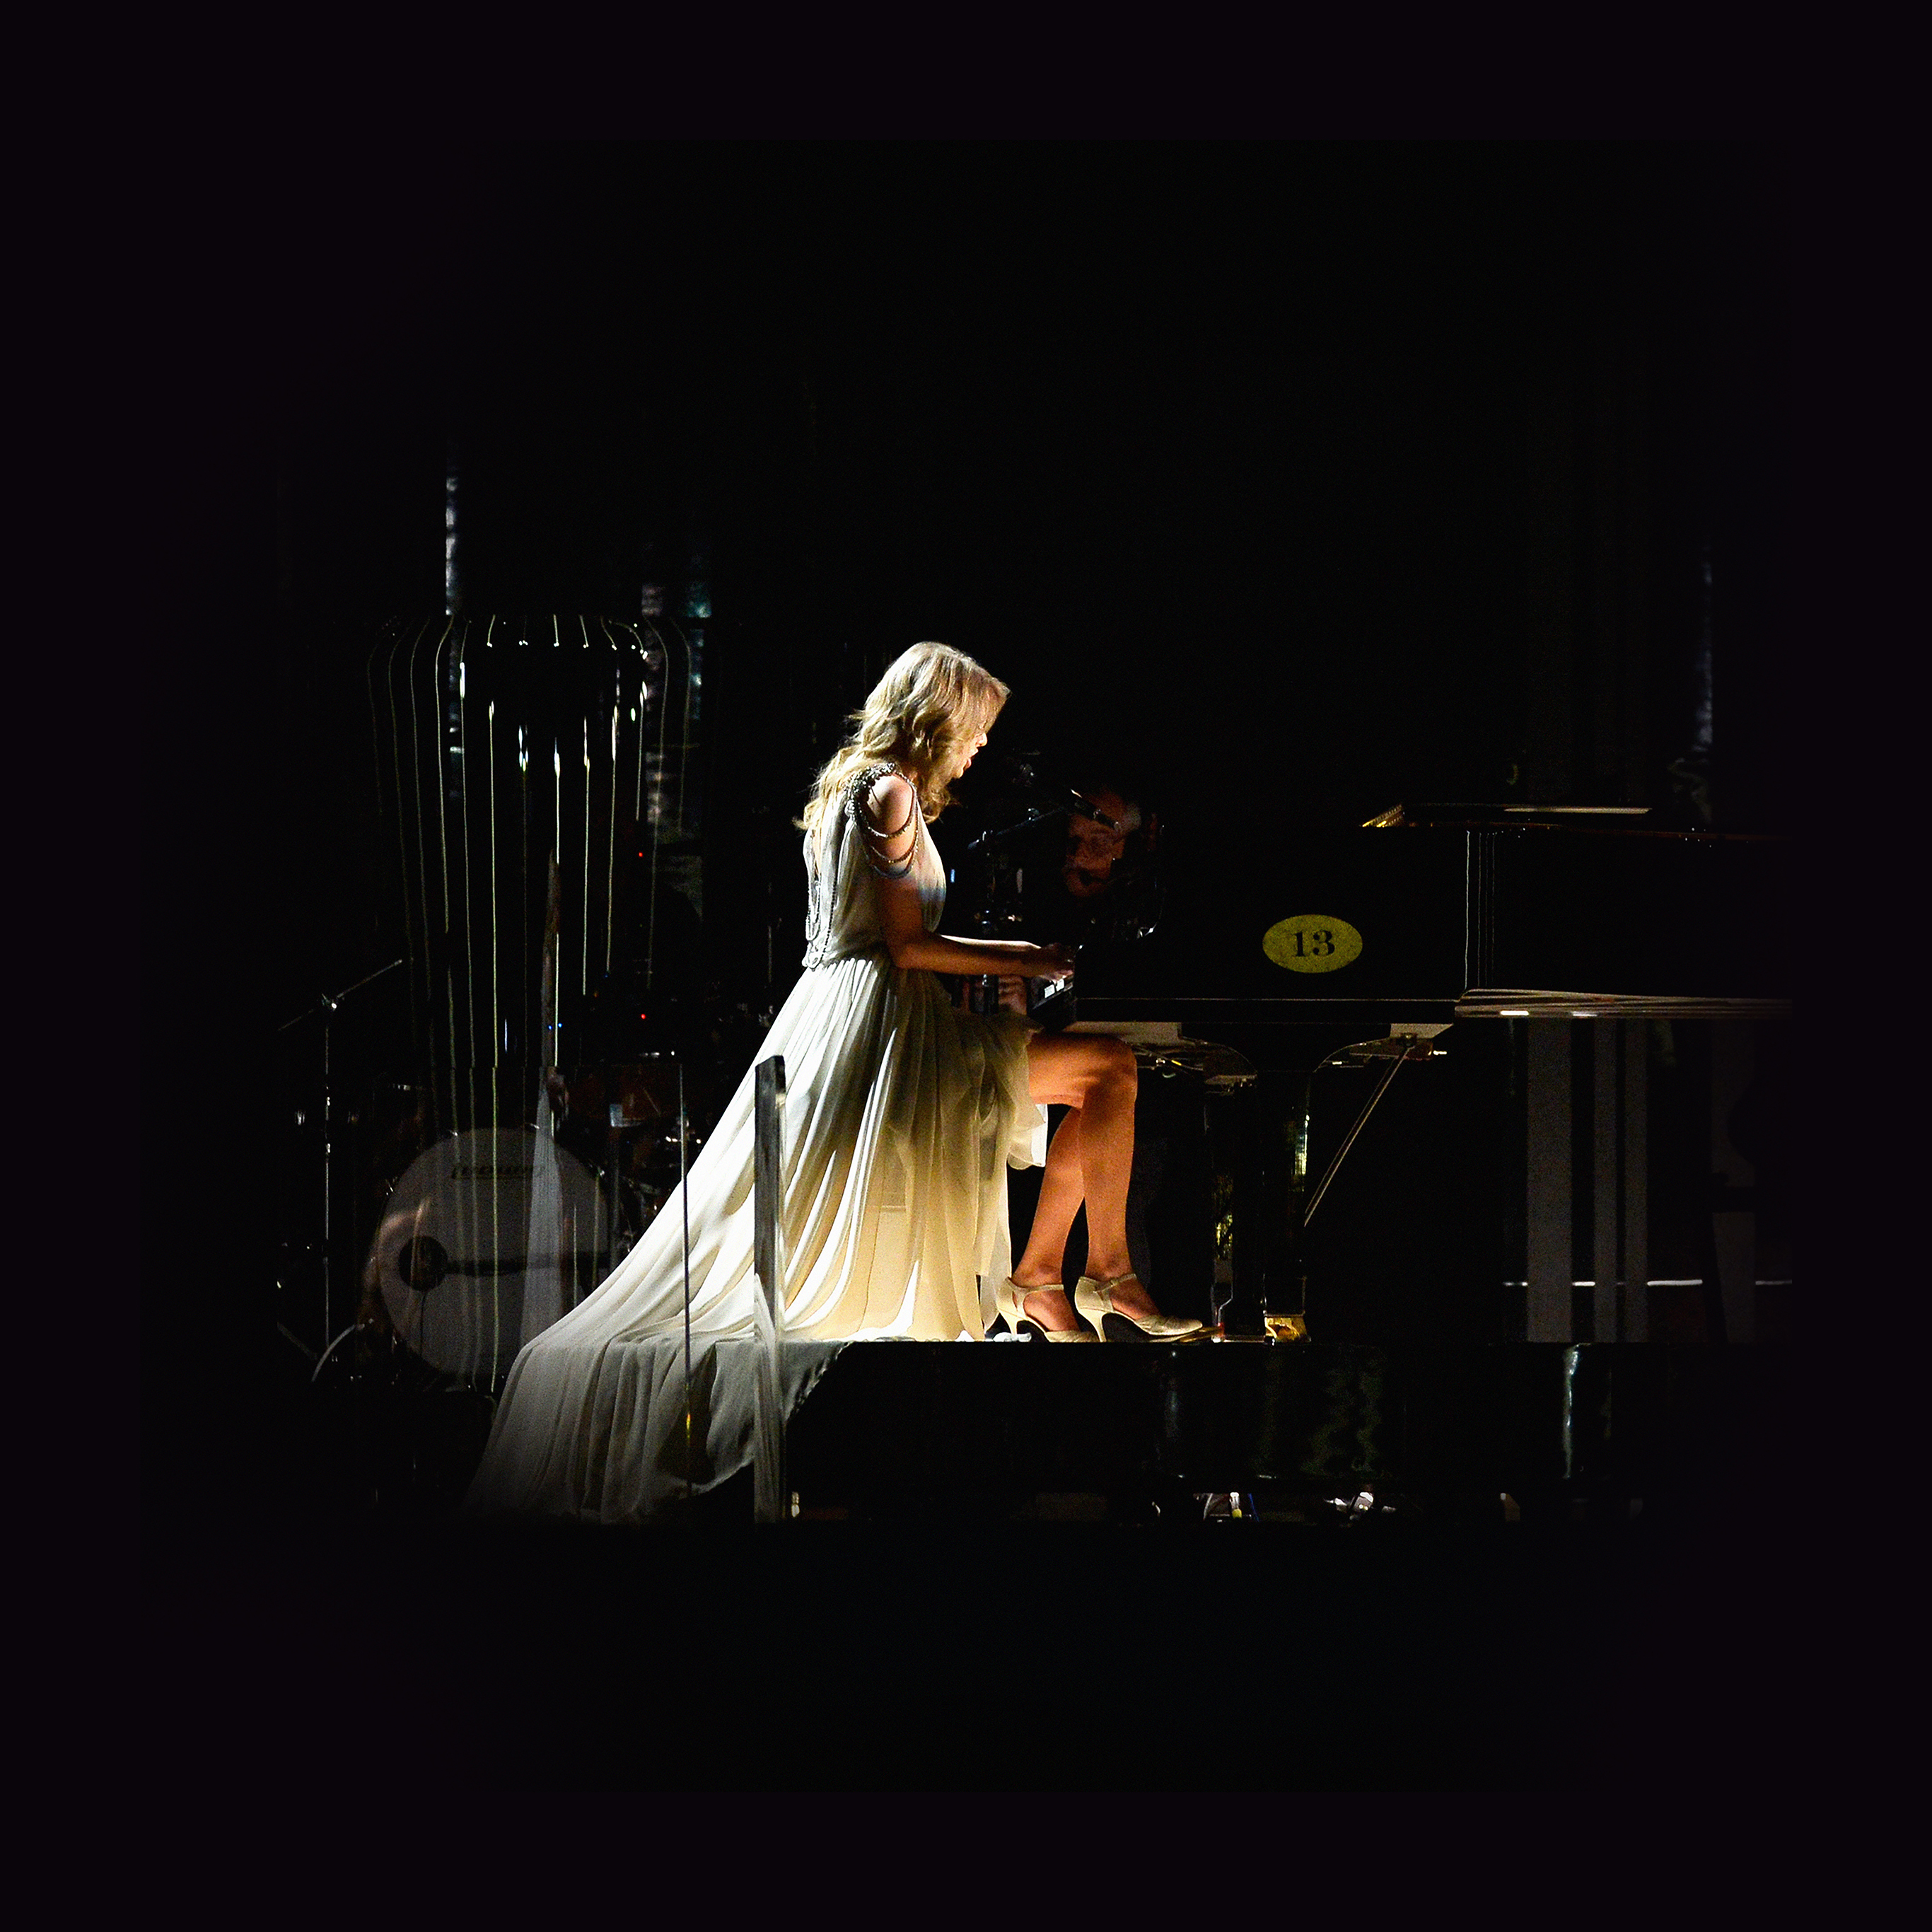 hb40-wallpaper-taylor-swift-piano-concert-woman-music ...